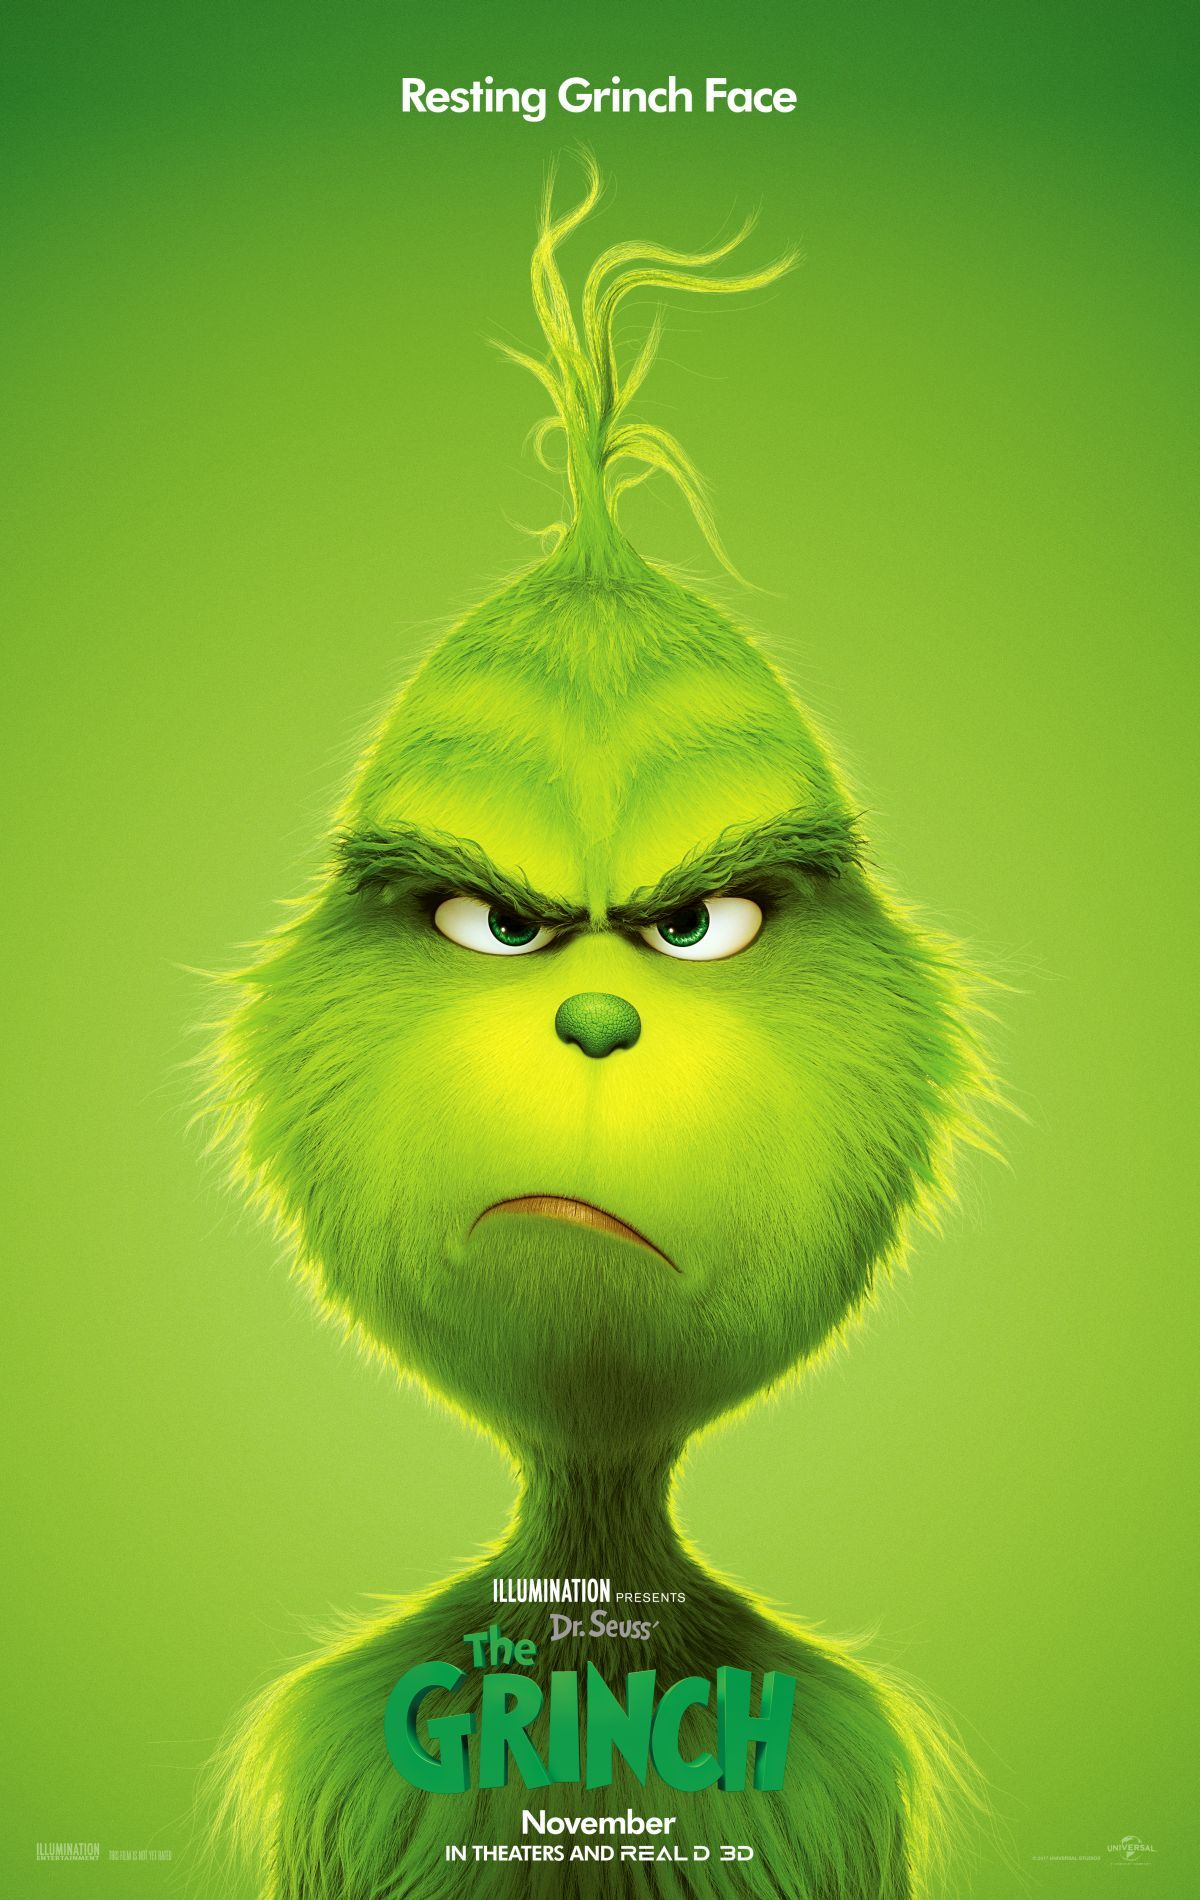 A Bad Banana in THE GRINCH Trailer | Film | Pinterest | Movies, 2018 ...